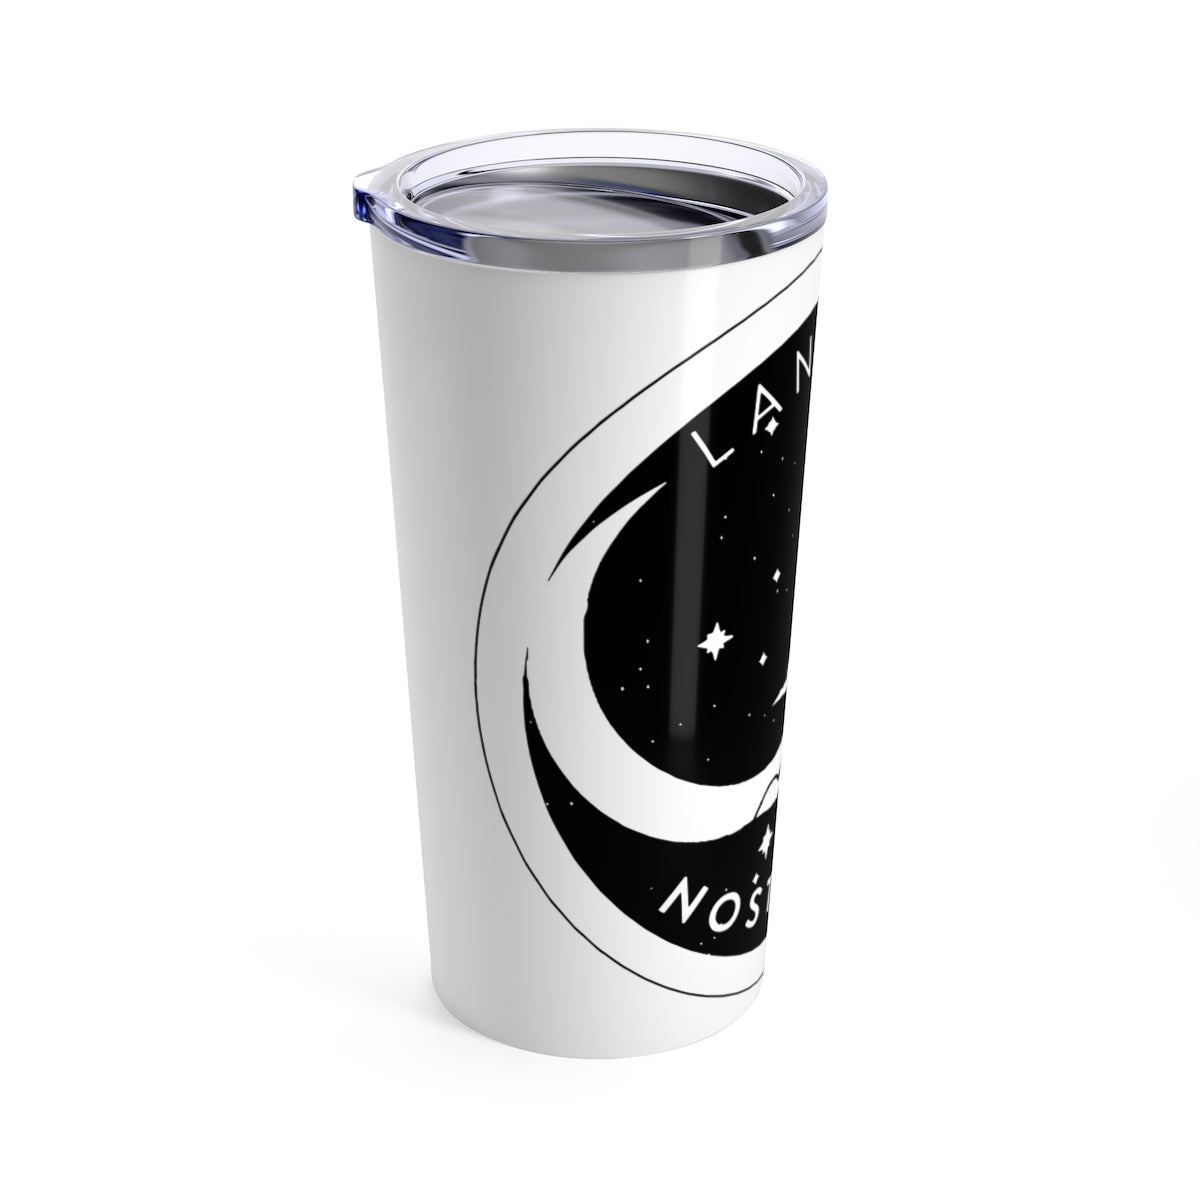 Land of Nostalgia Custom Tumbler 20oz